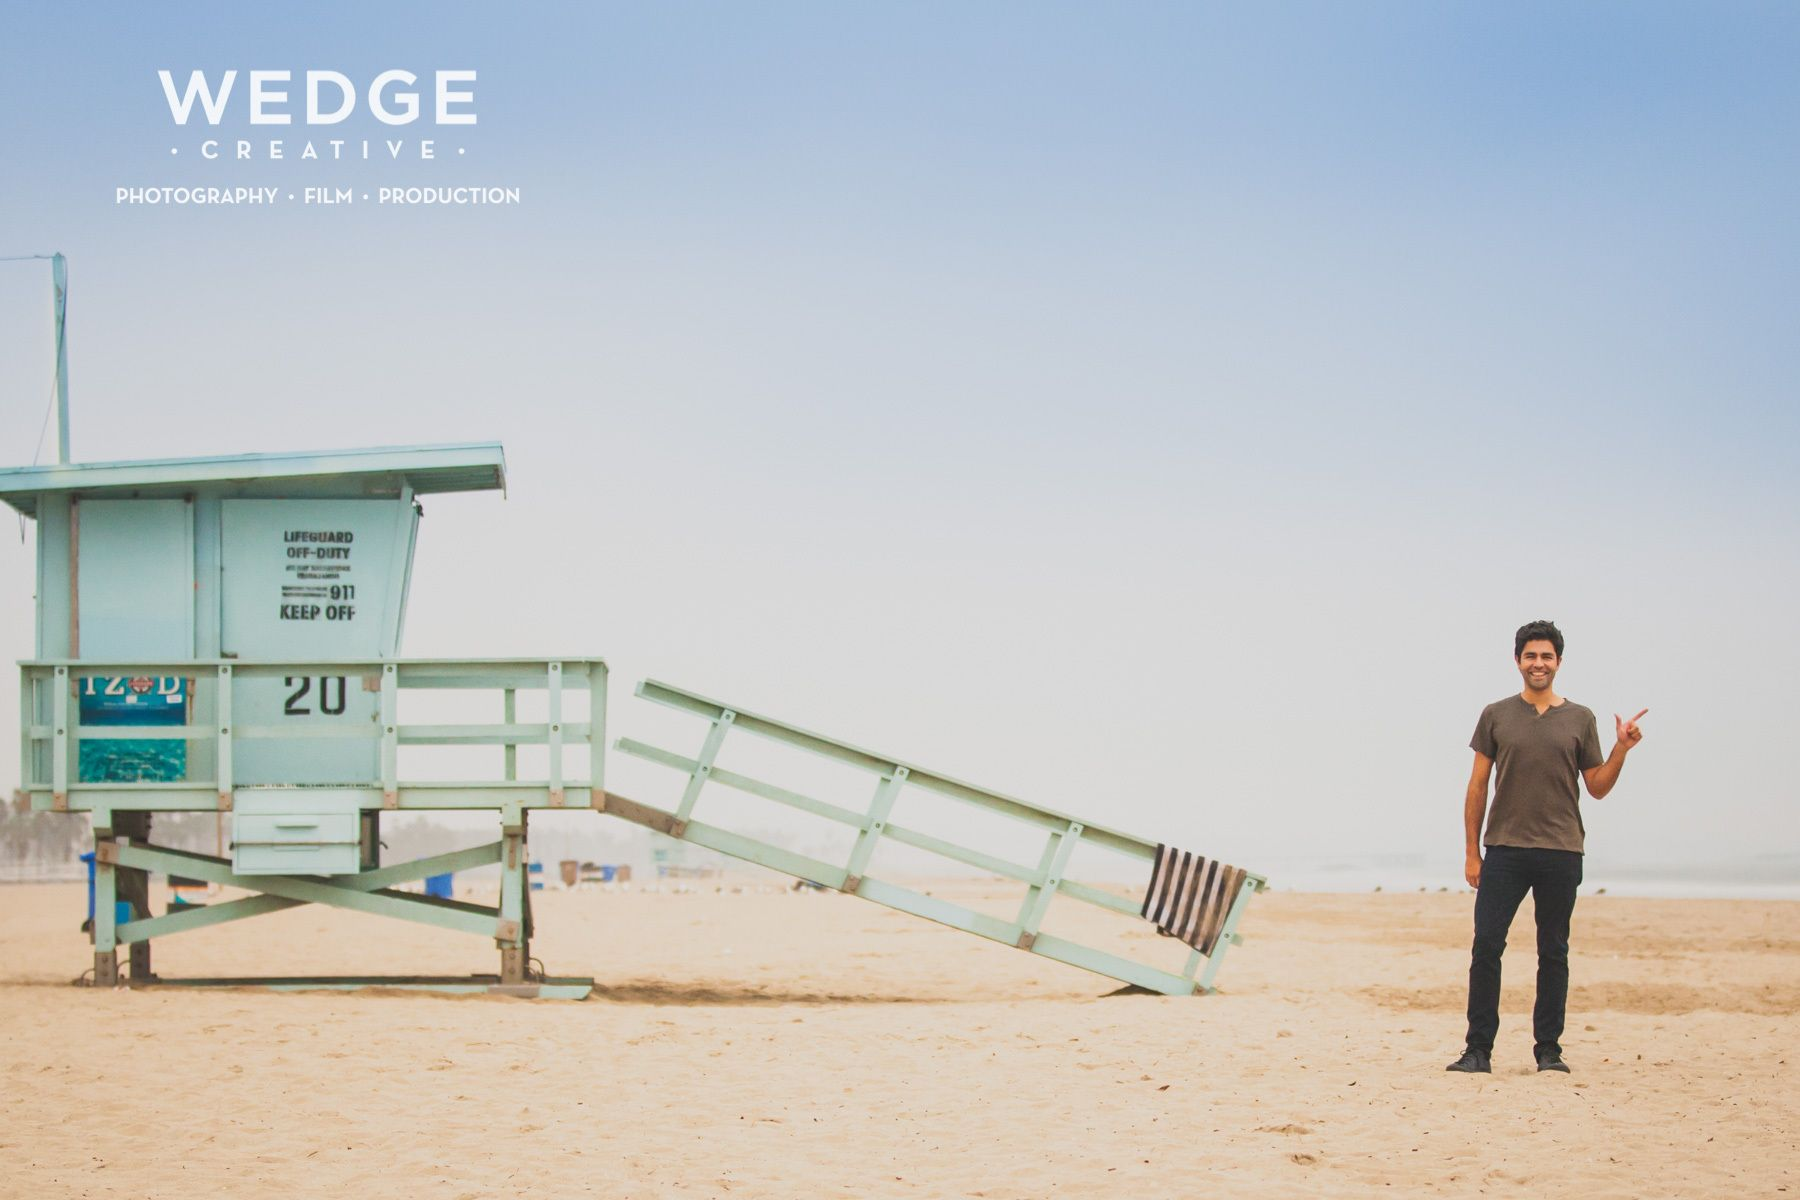 WEDGE Creative: Photography • Film • Production